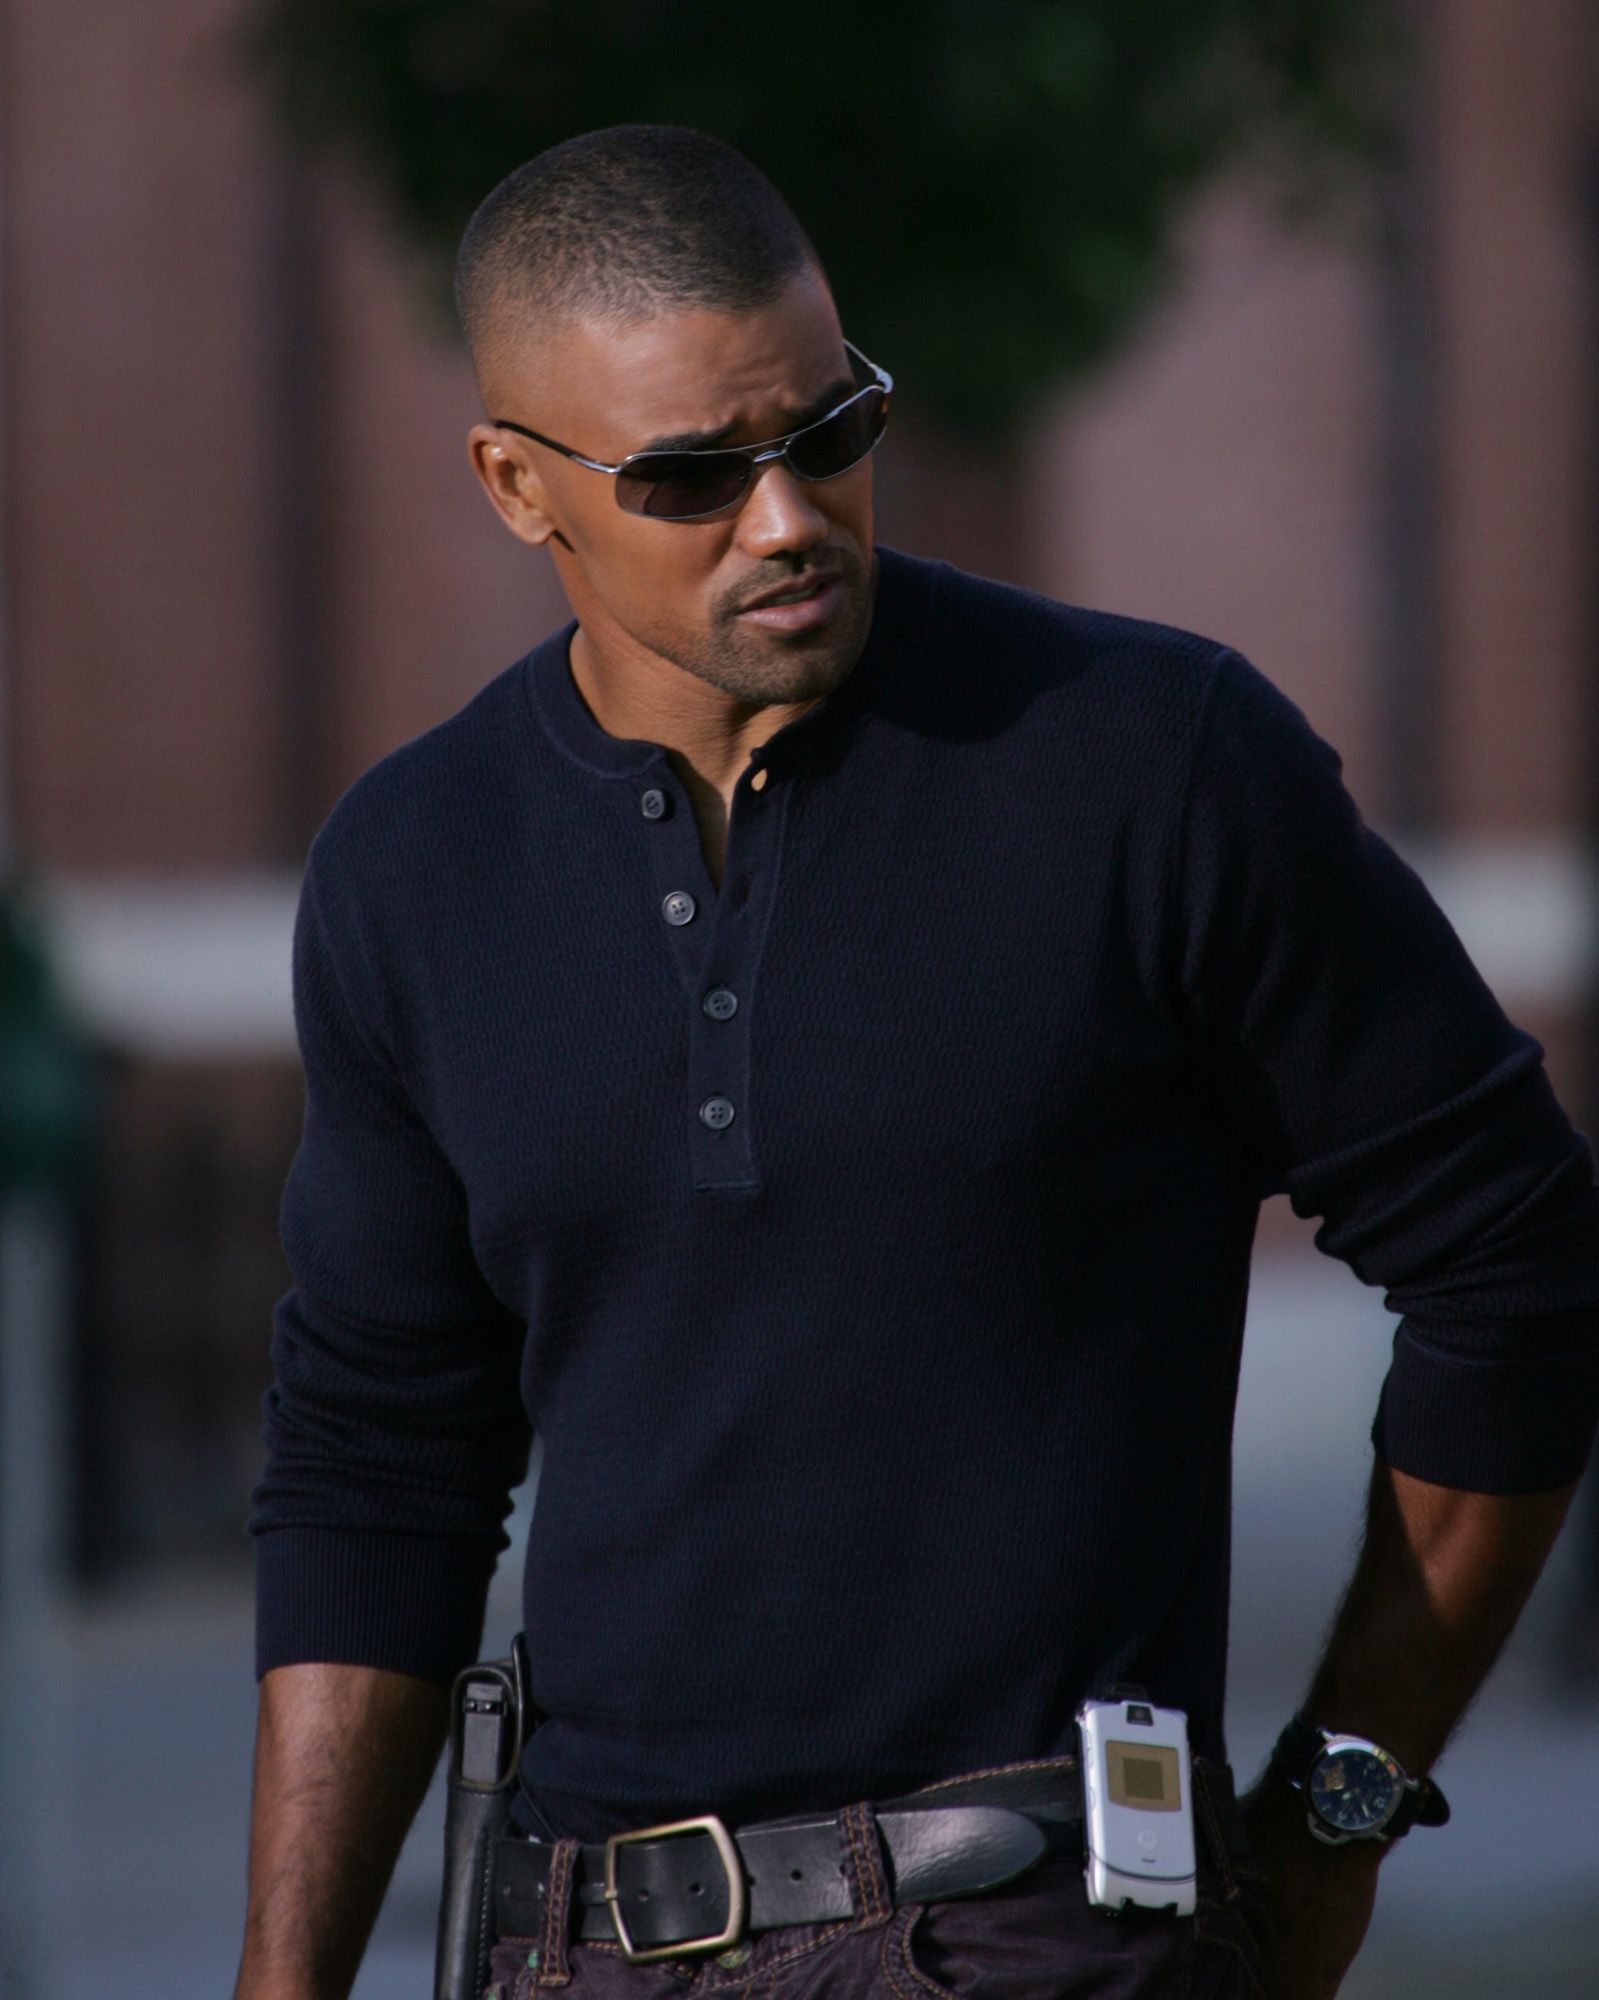 Shemar Moore - he is one reason why I watch Criminal Minds whenever I find it on TV and refuse to watch anything else